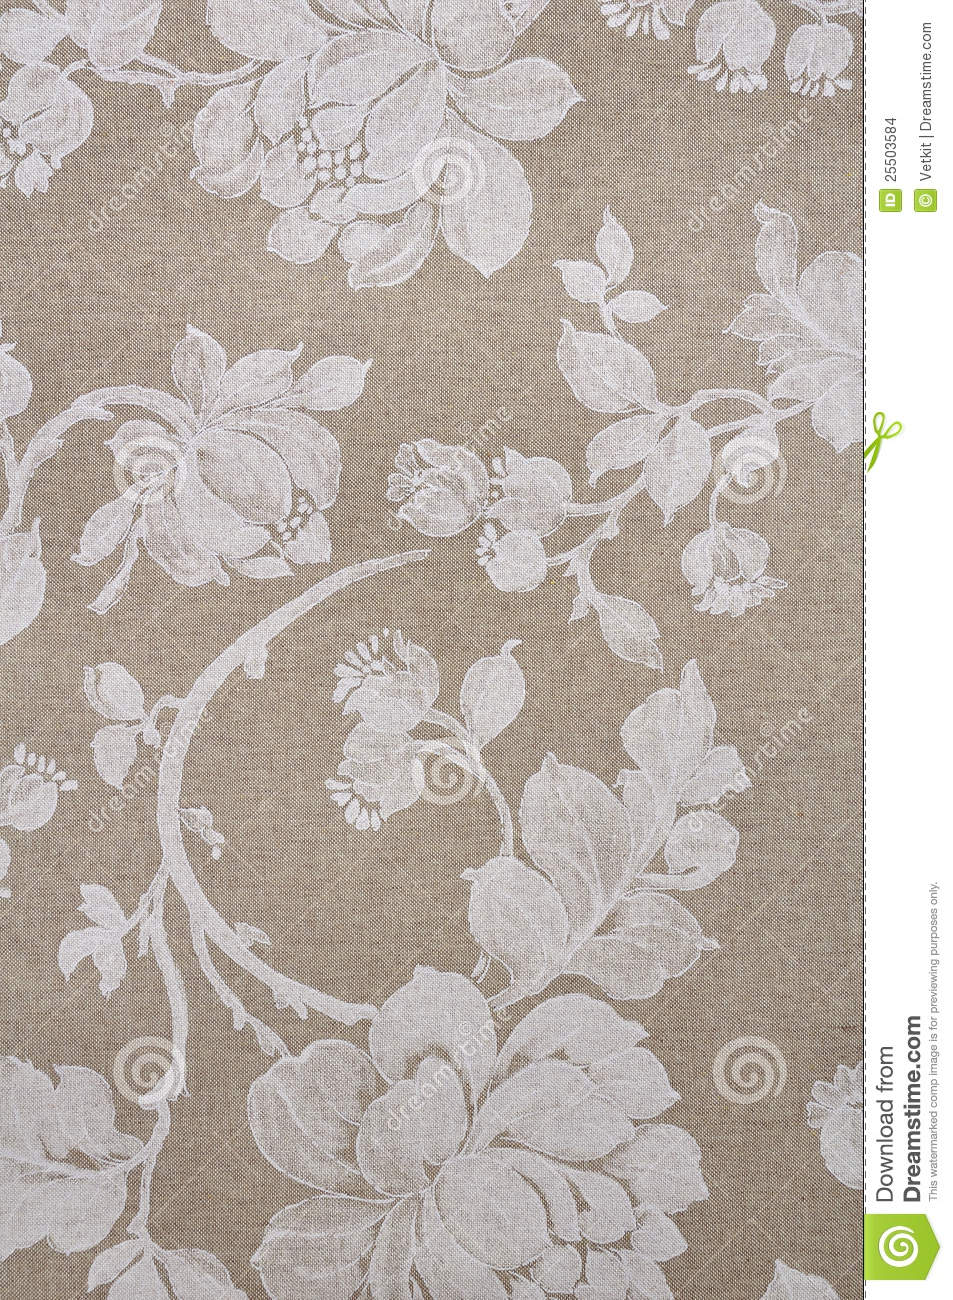 floral patterned canvas fabric - photo #25